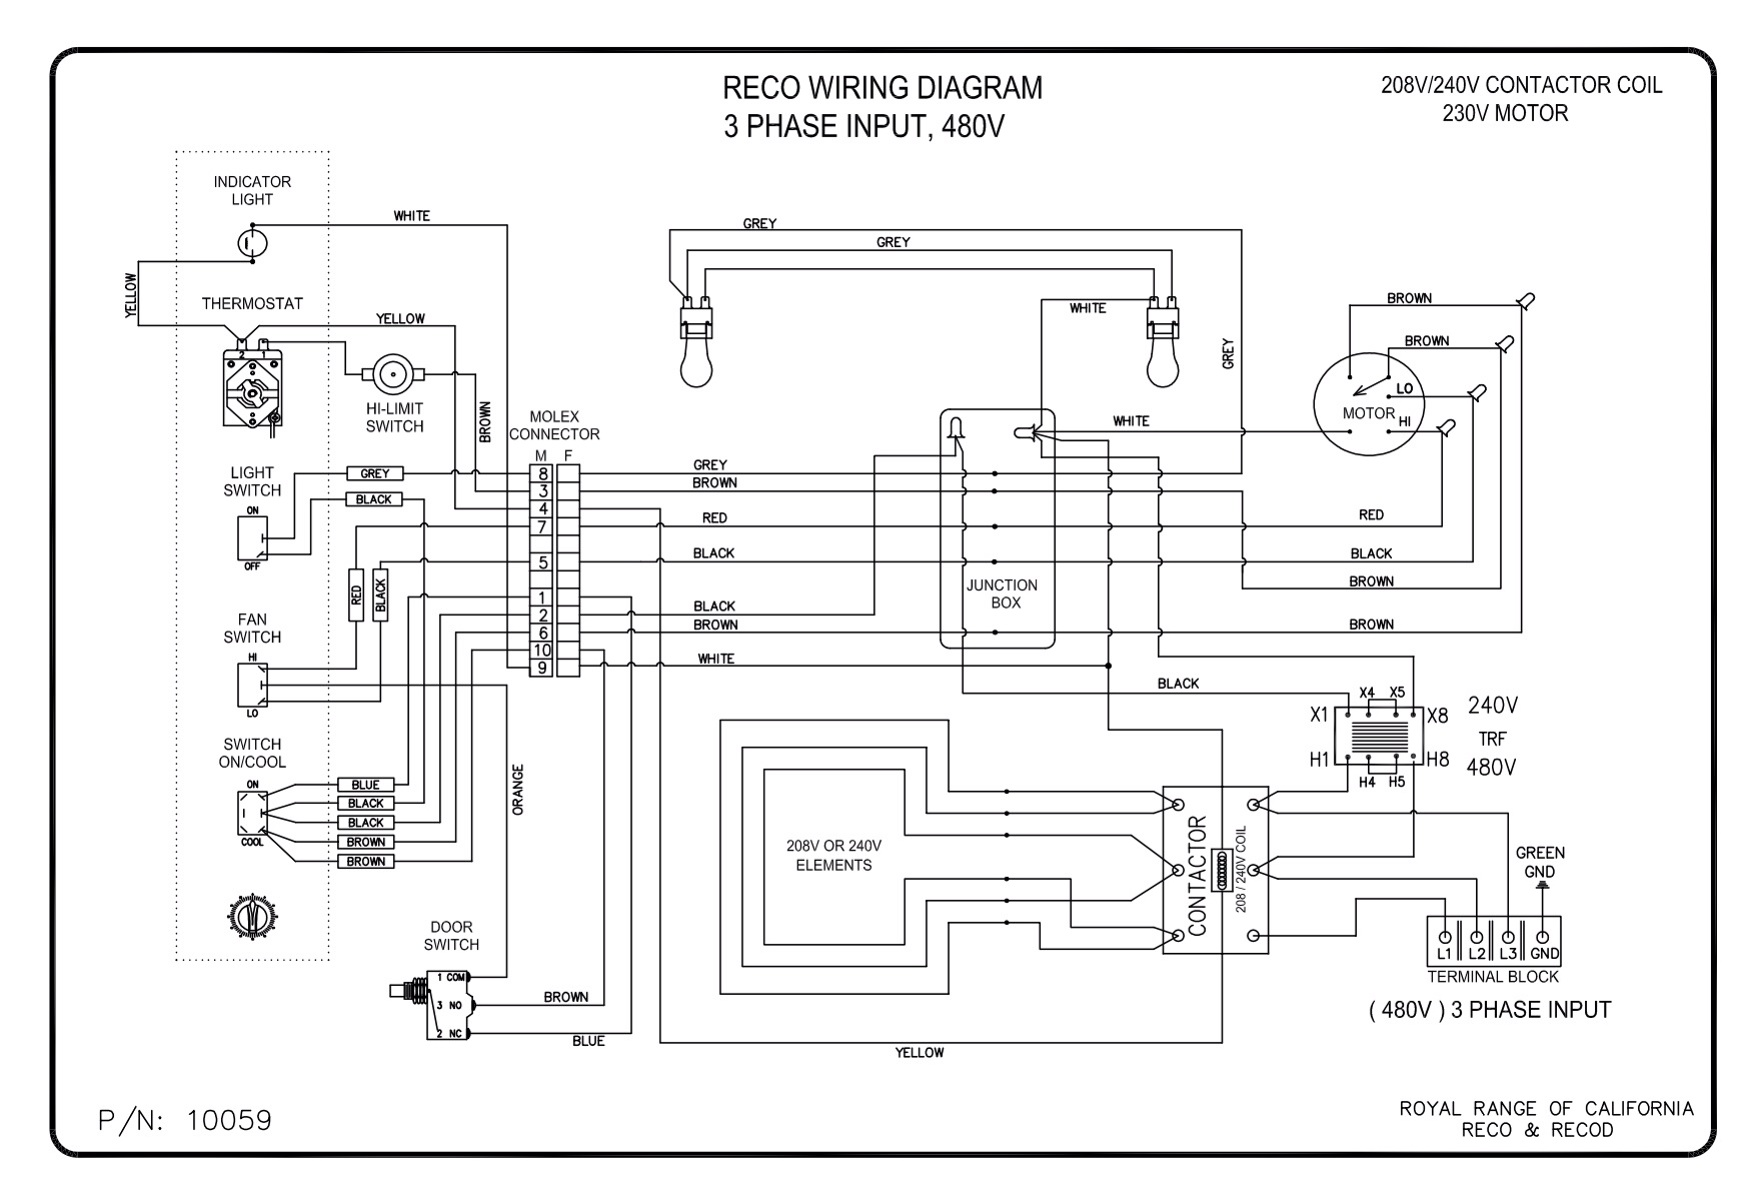 wire stove schematic diagram wiring diagram schematics maytag wiring  schematics baking oven wiring diagram wiring diagram